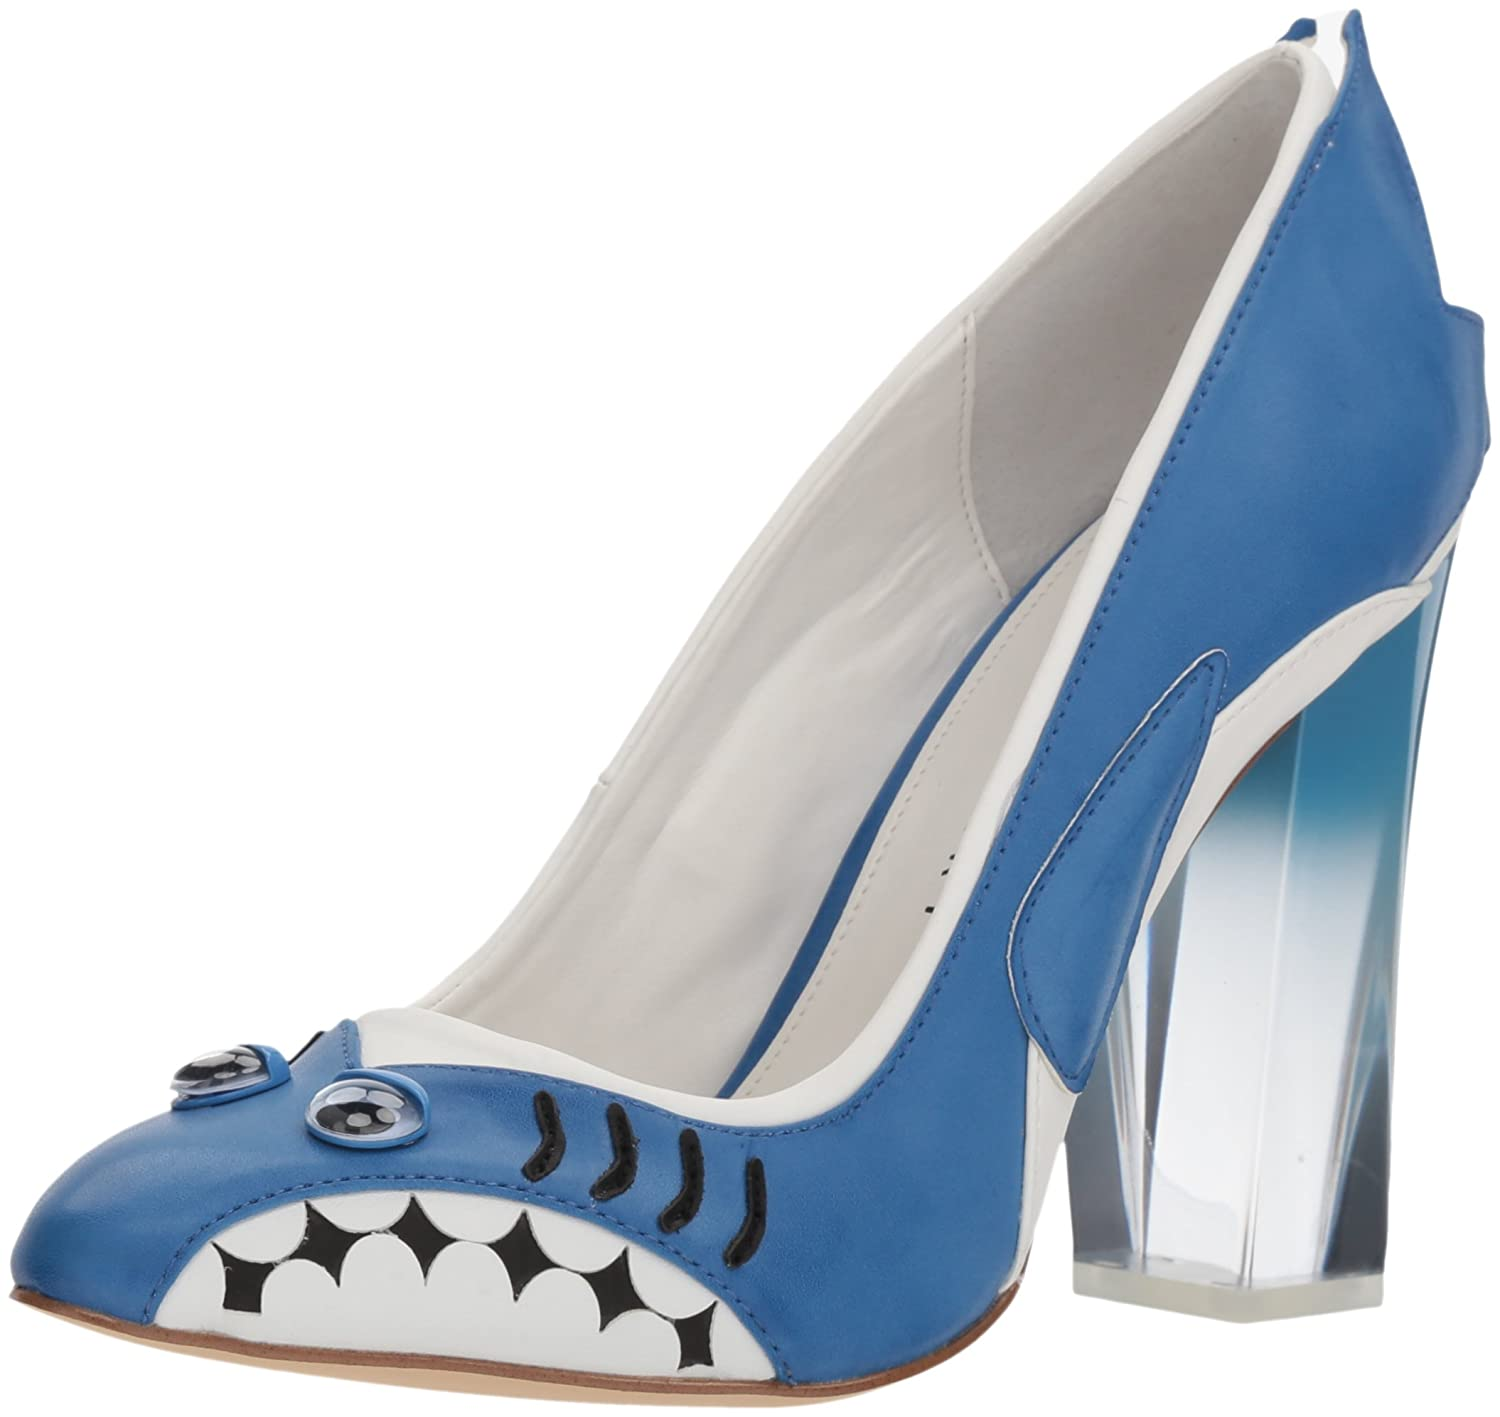 Katy Perry Women's The Mako Pump B07534S8B7 10.5 B(M) US|Blue Bonnet